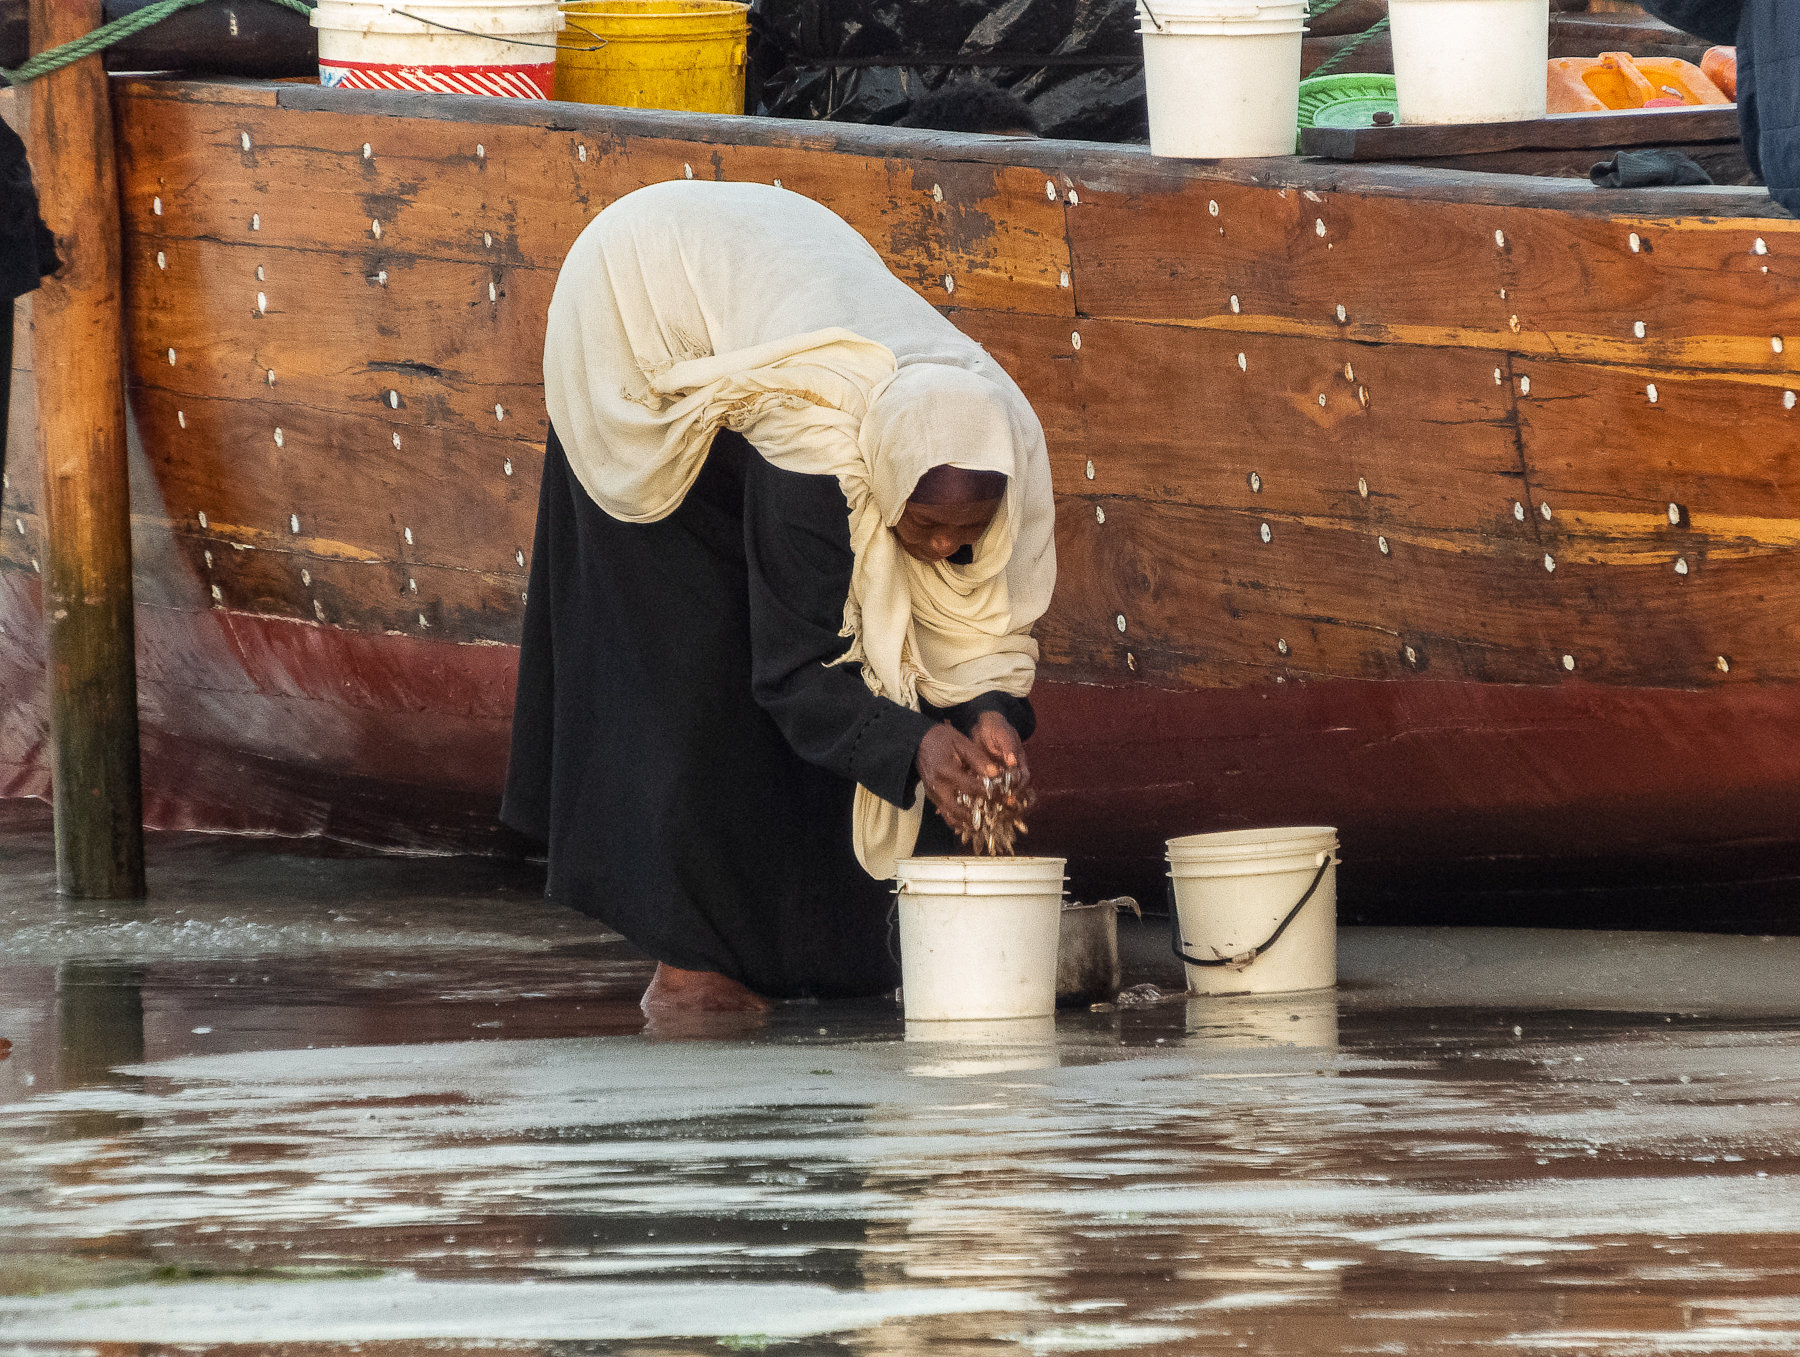 Sue_Henderson_Morning Zanzibar_Filling Buckets_4.jpg